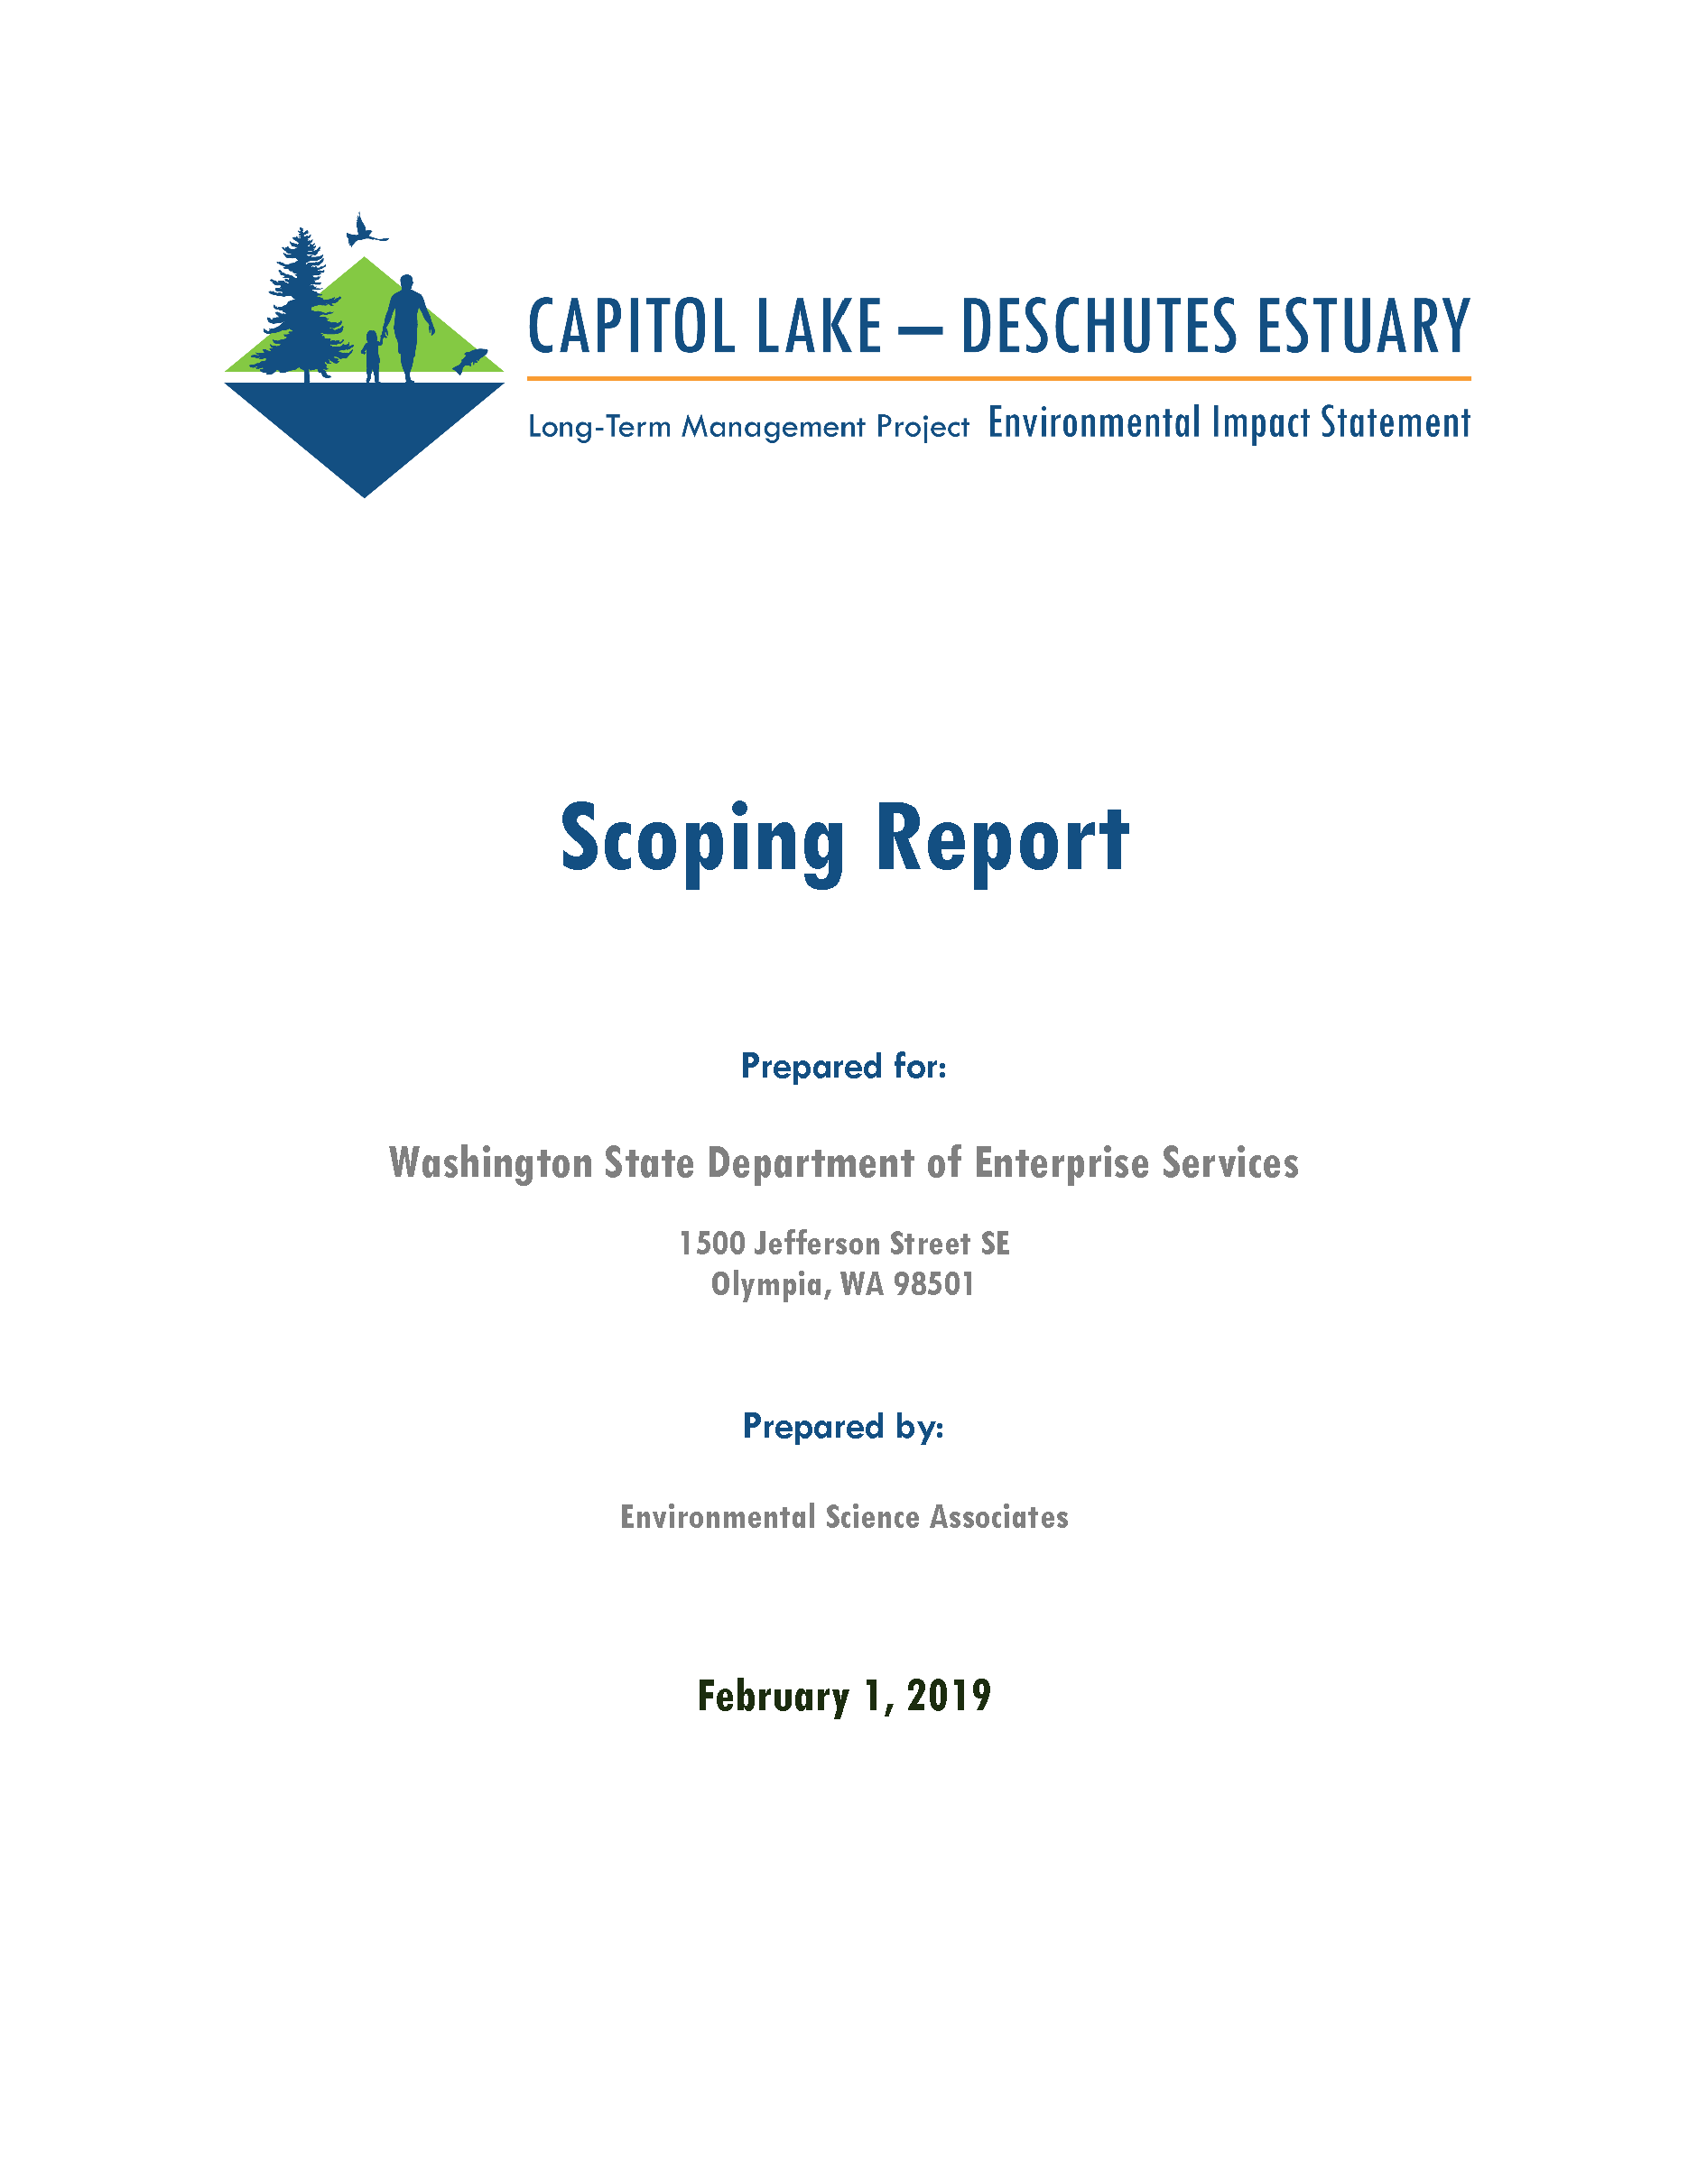 Cover page of the Cover of Capitol Lake - Deschutes Estuary Scoping Report Long-Term Management Planning